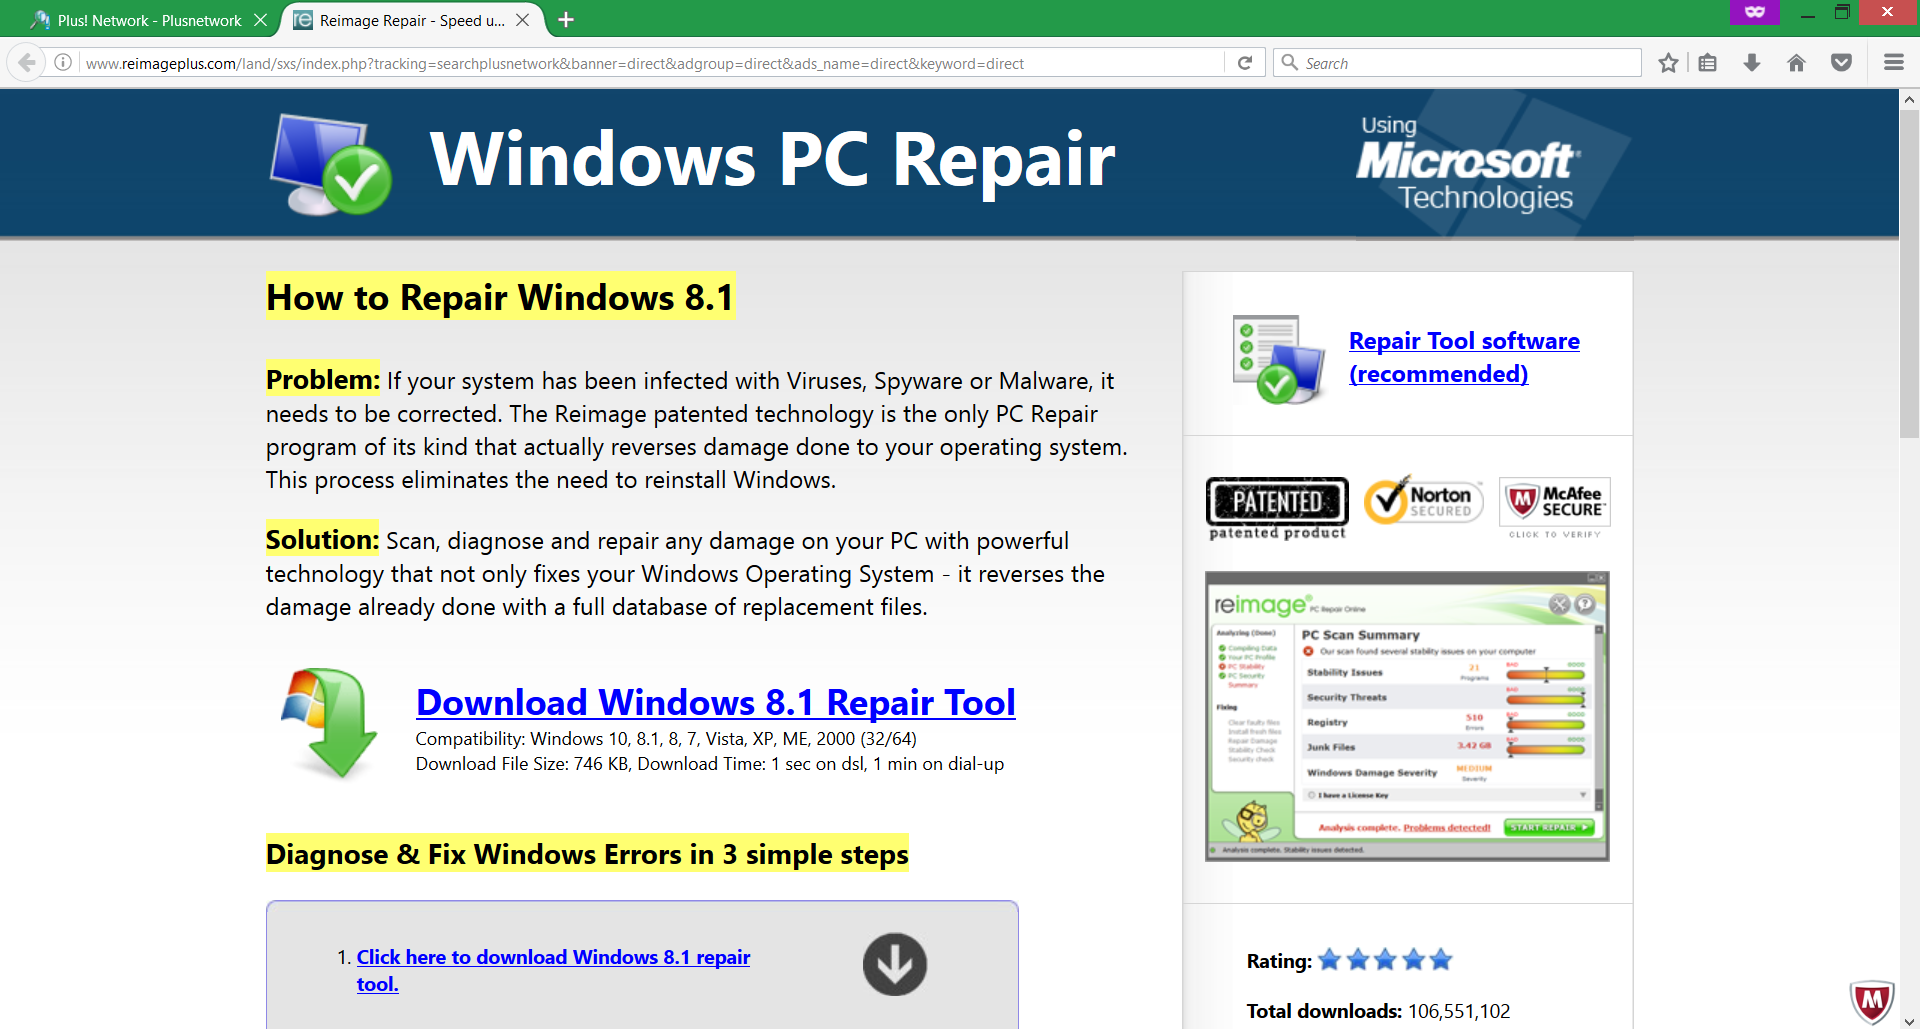 windows-pc-repair-reimage-repair-potentiallly-unwanted-program-provided-via-plus-network